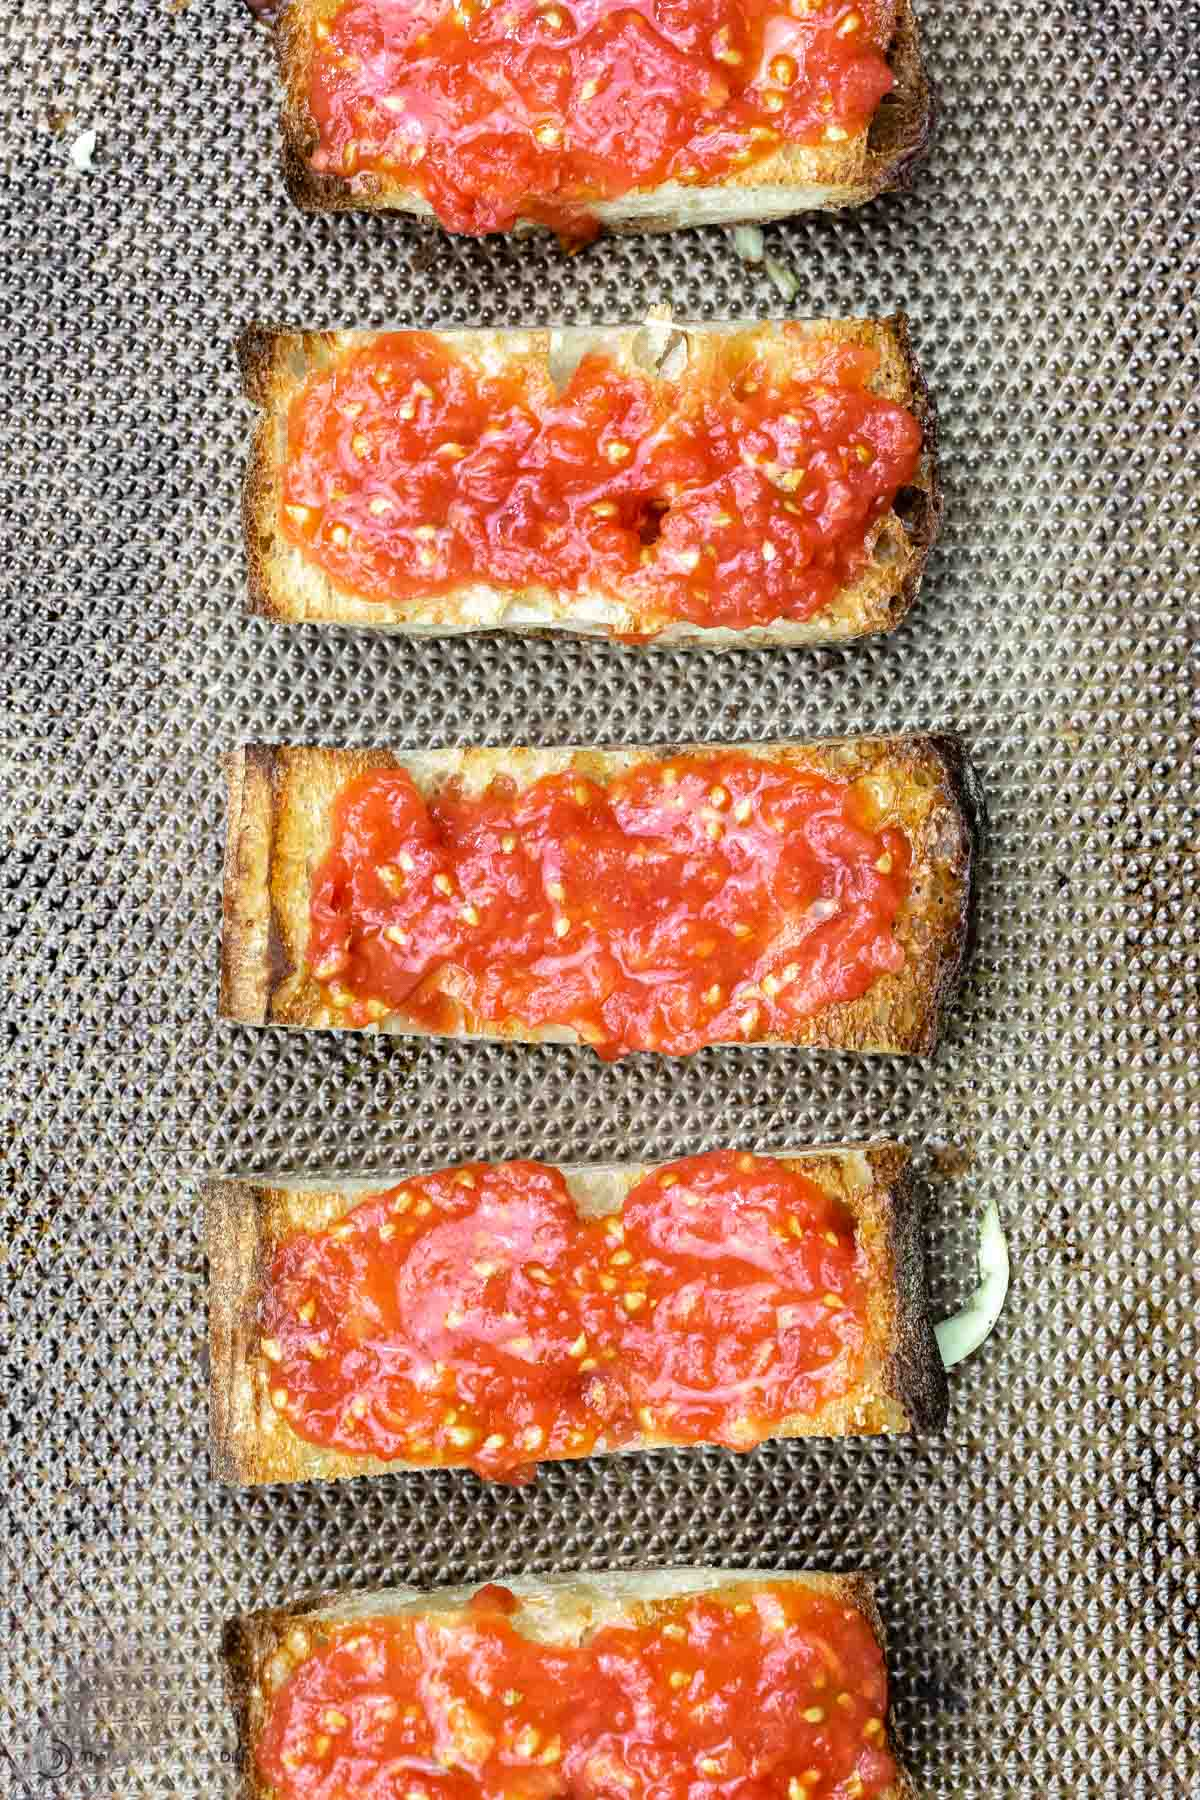 6 slices of pan con tomate